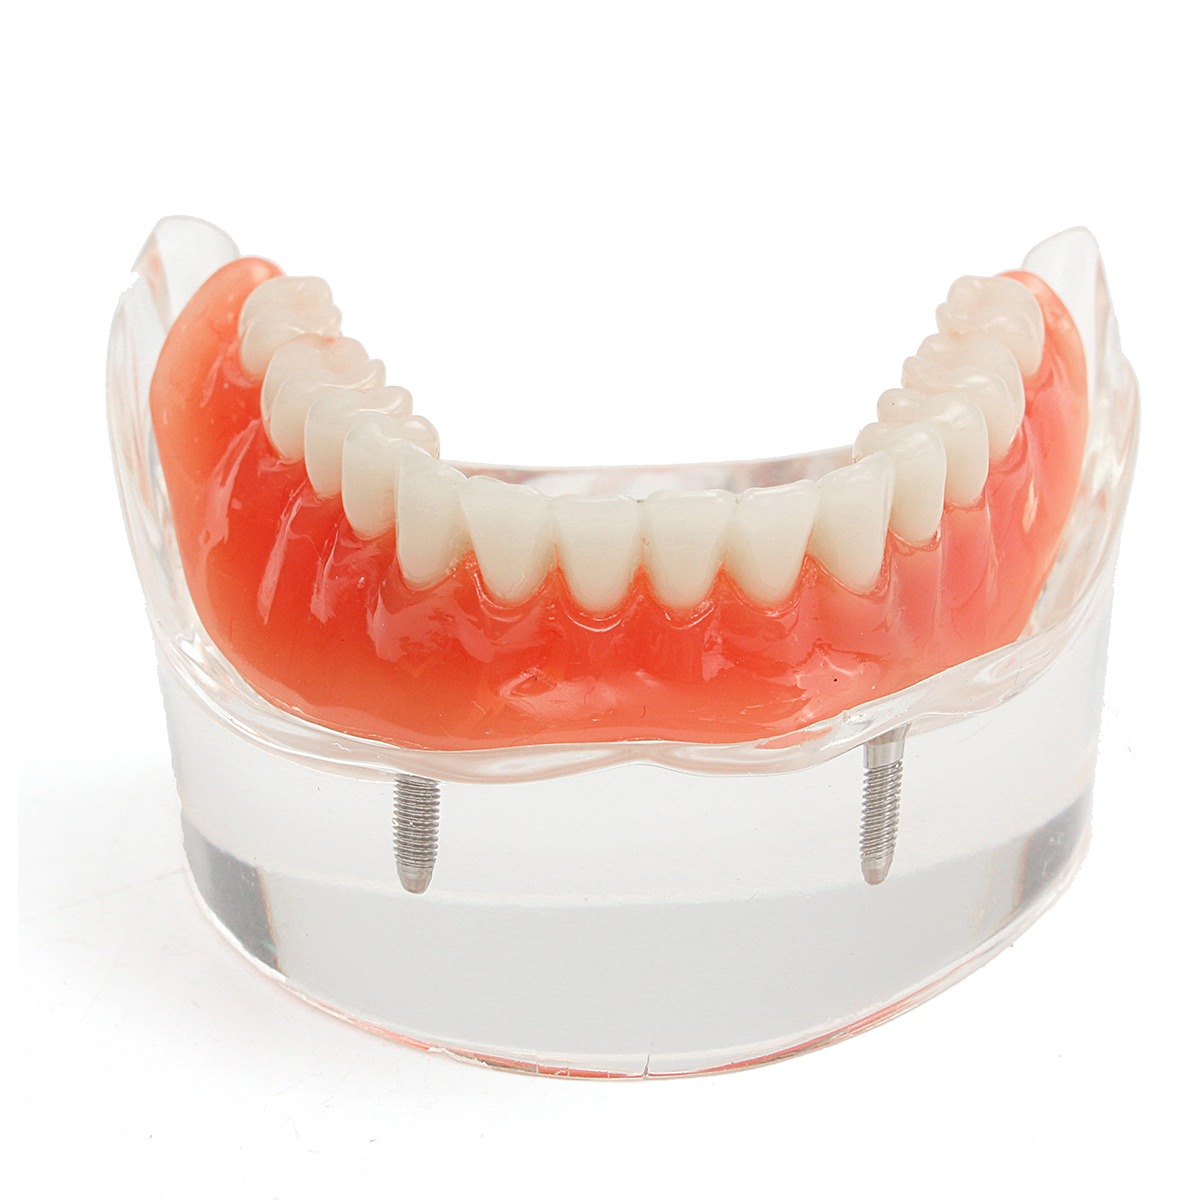 Lower Teeth Model Mandibular With Implant Restoration Tooth Dental Overdenture Interior Mandibular for Medical Teaching Study soarday dental restoration model with 4 implants overdenture inferior teaching study teeth model